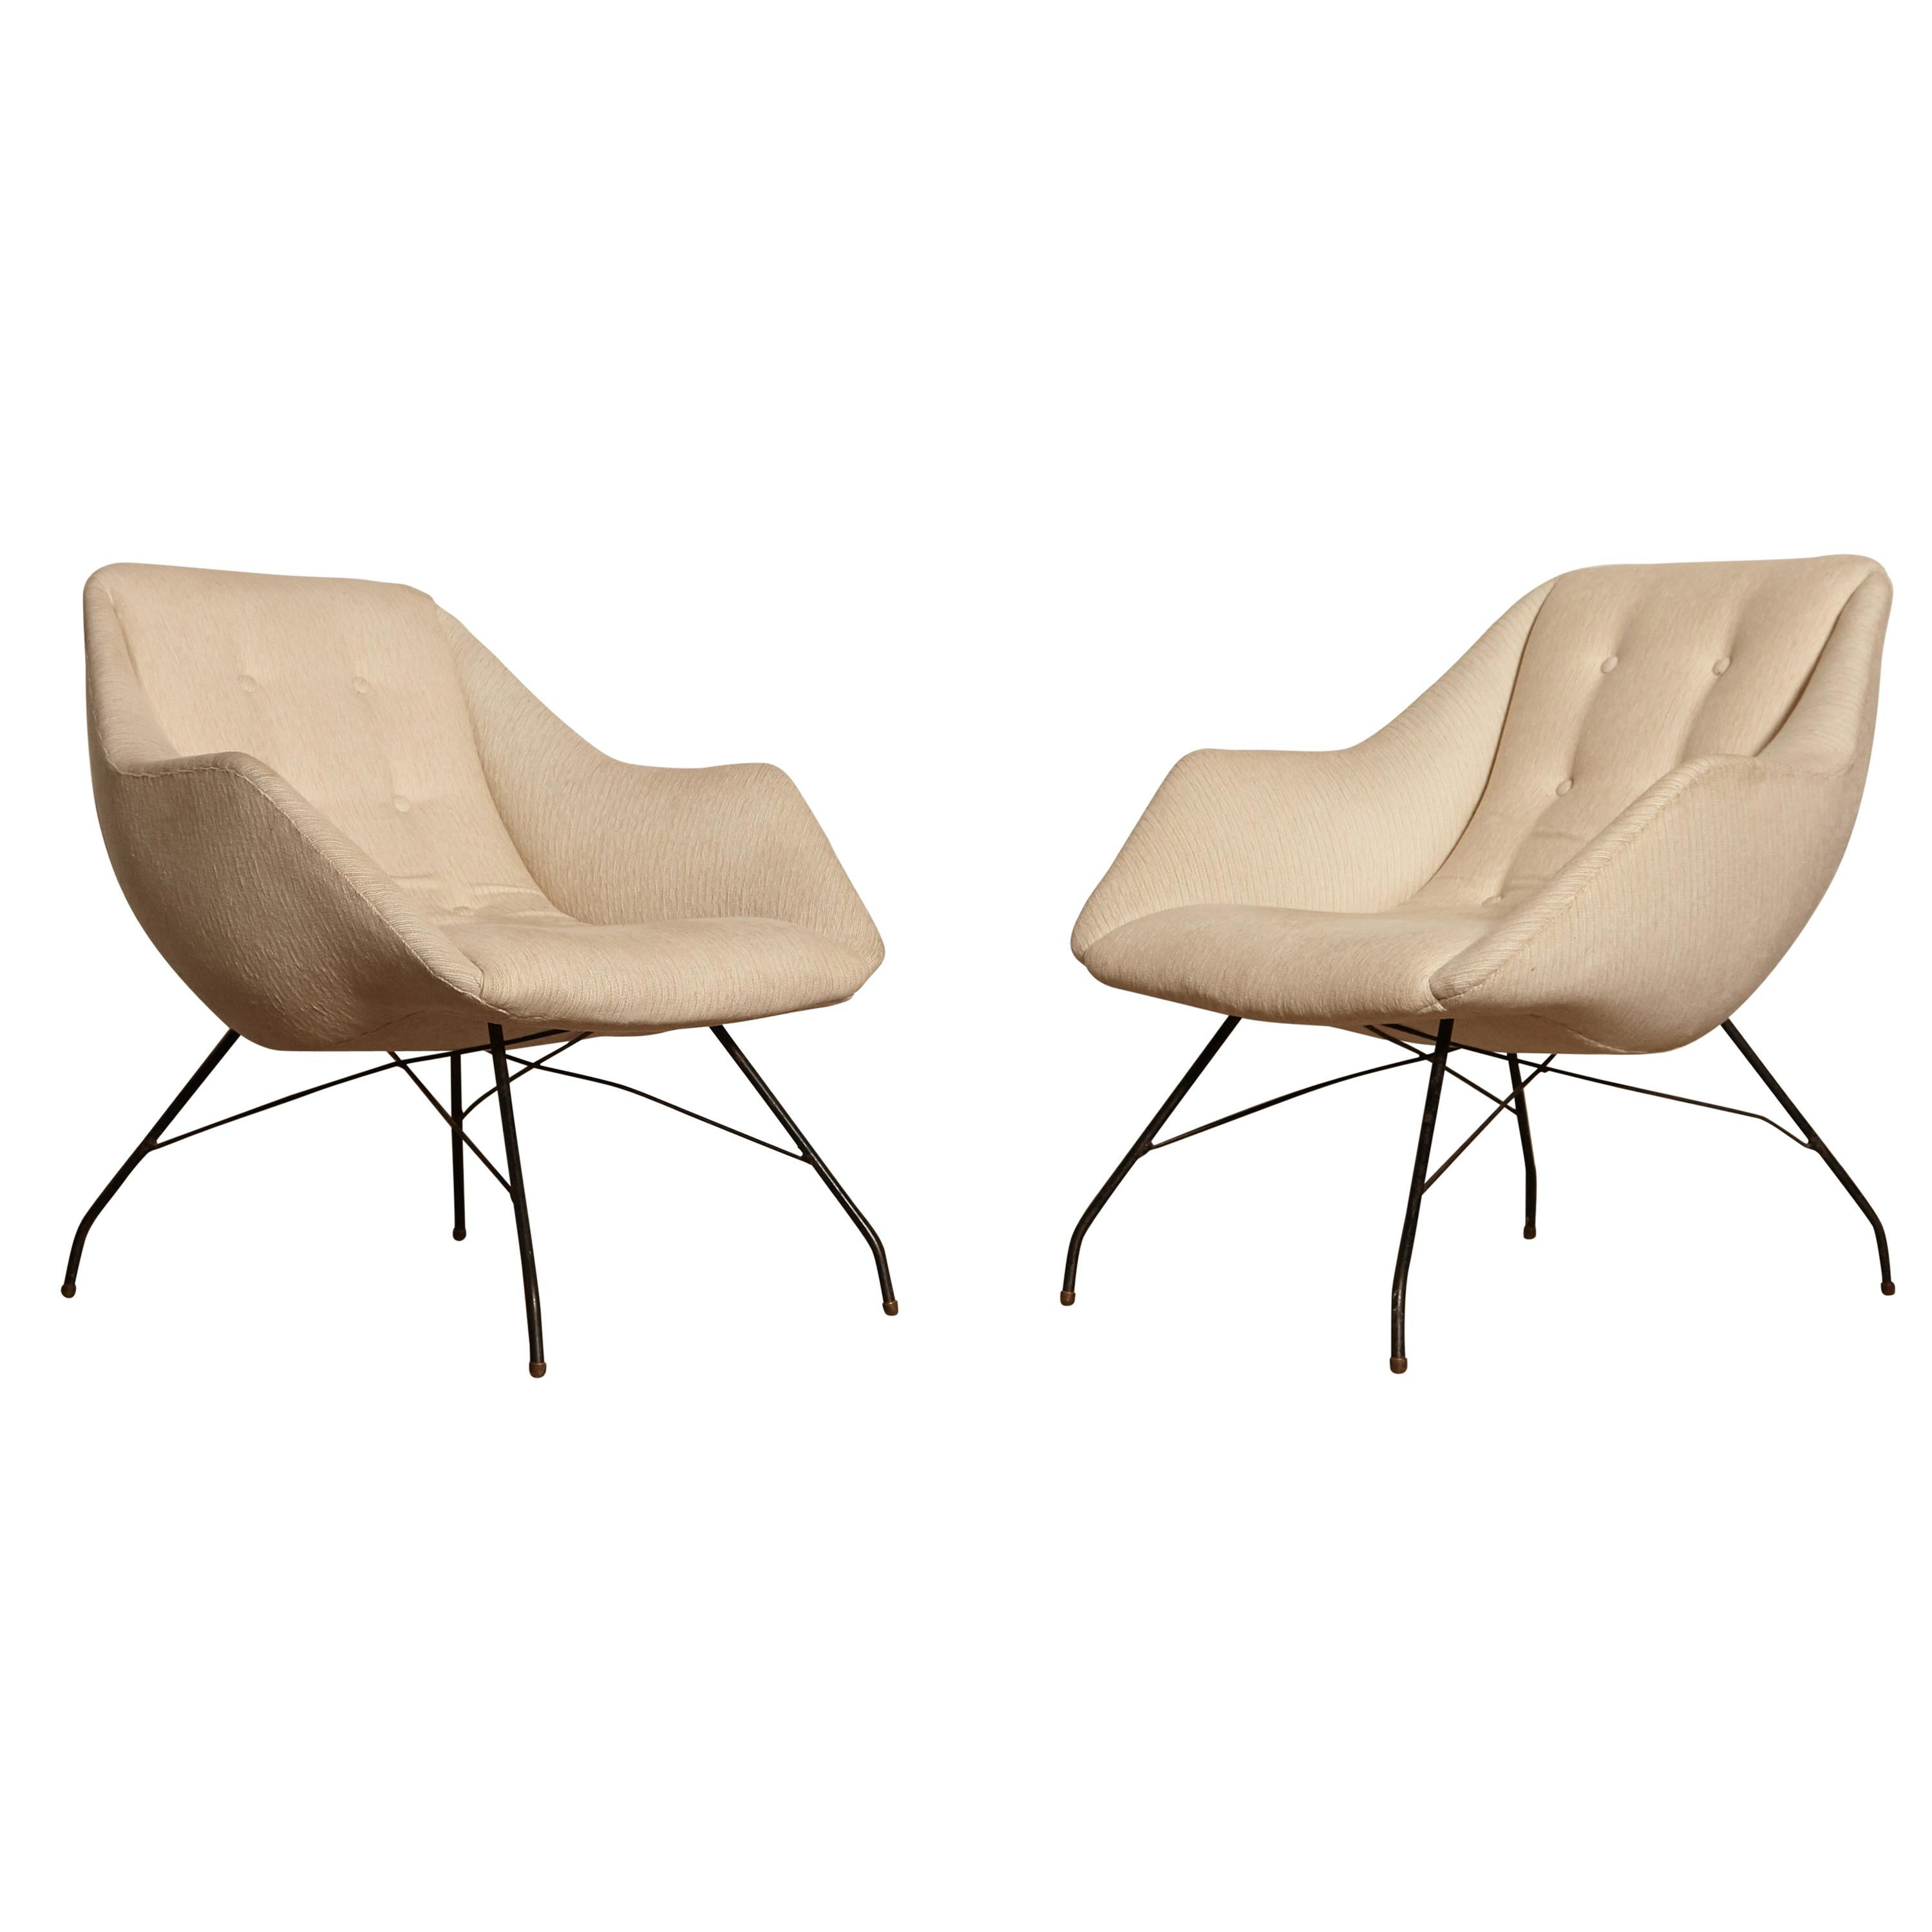 Carlo Hauner and Martin Eisler Shell 'Concha' Lounge Chairs, Forma Brazil, 1950s